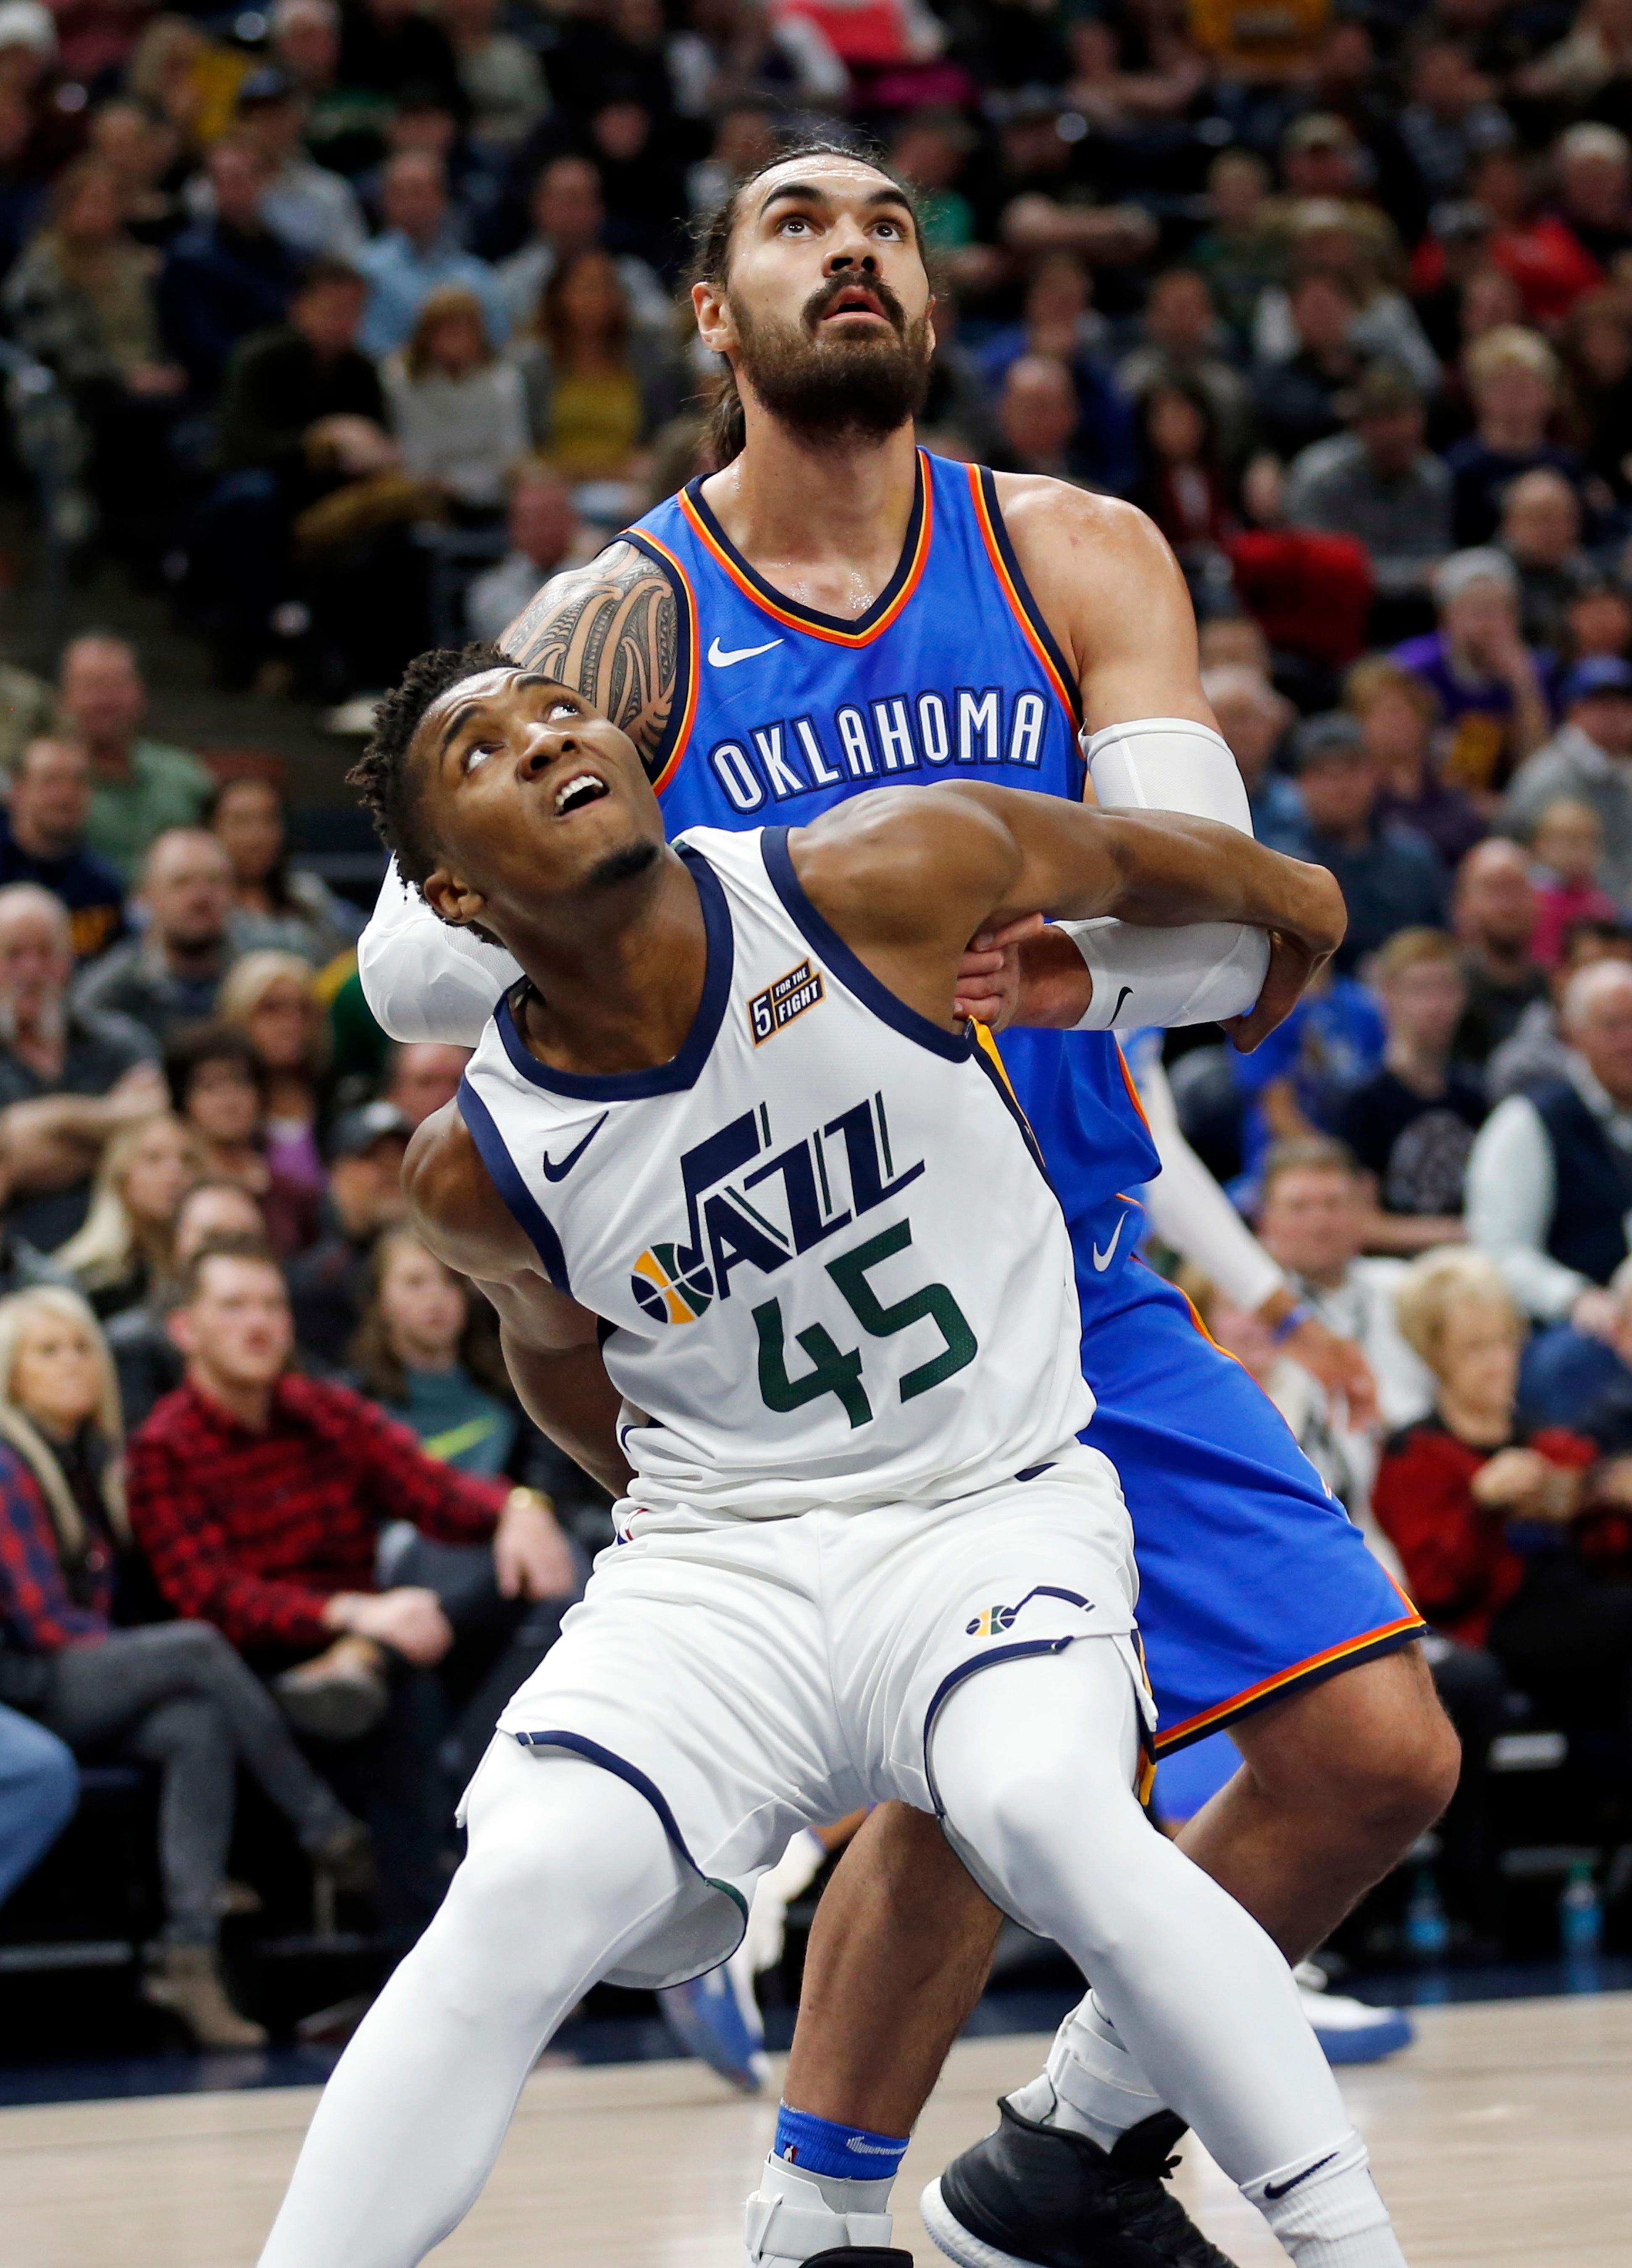 Utah Jazz guard Donovan Mitchell (45) and Oklahoma City Thunder center Steven Adams, right, battle under the boards for a rebound in the first half during an NBA basketball game Saturday, Dec. 23, 2017, in Salt Lake City. (AP Photo/Rick Bowmer)